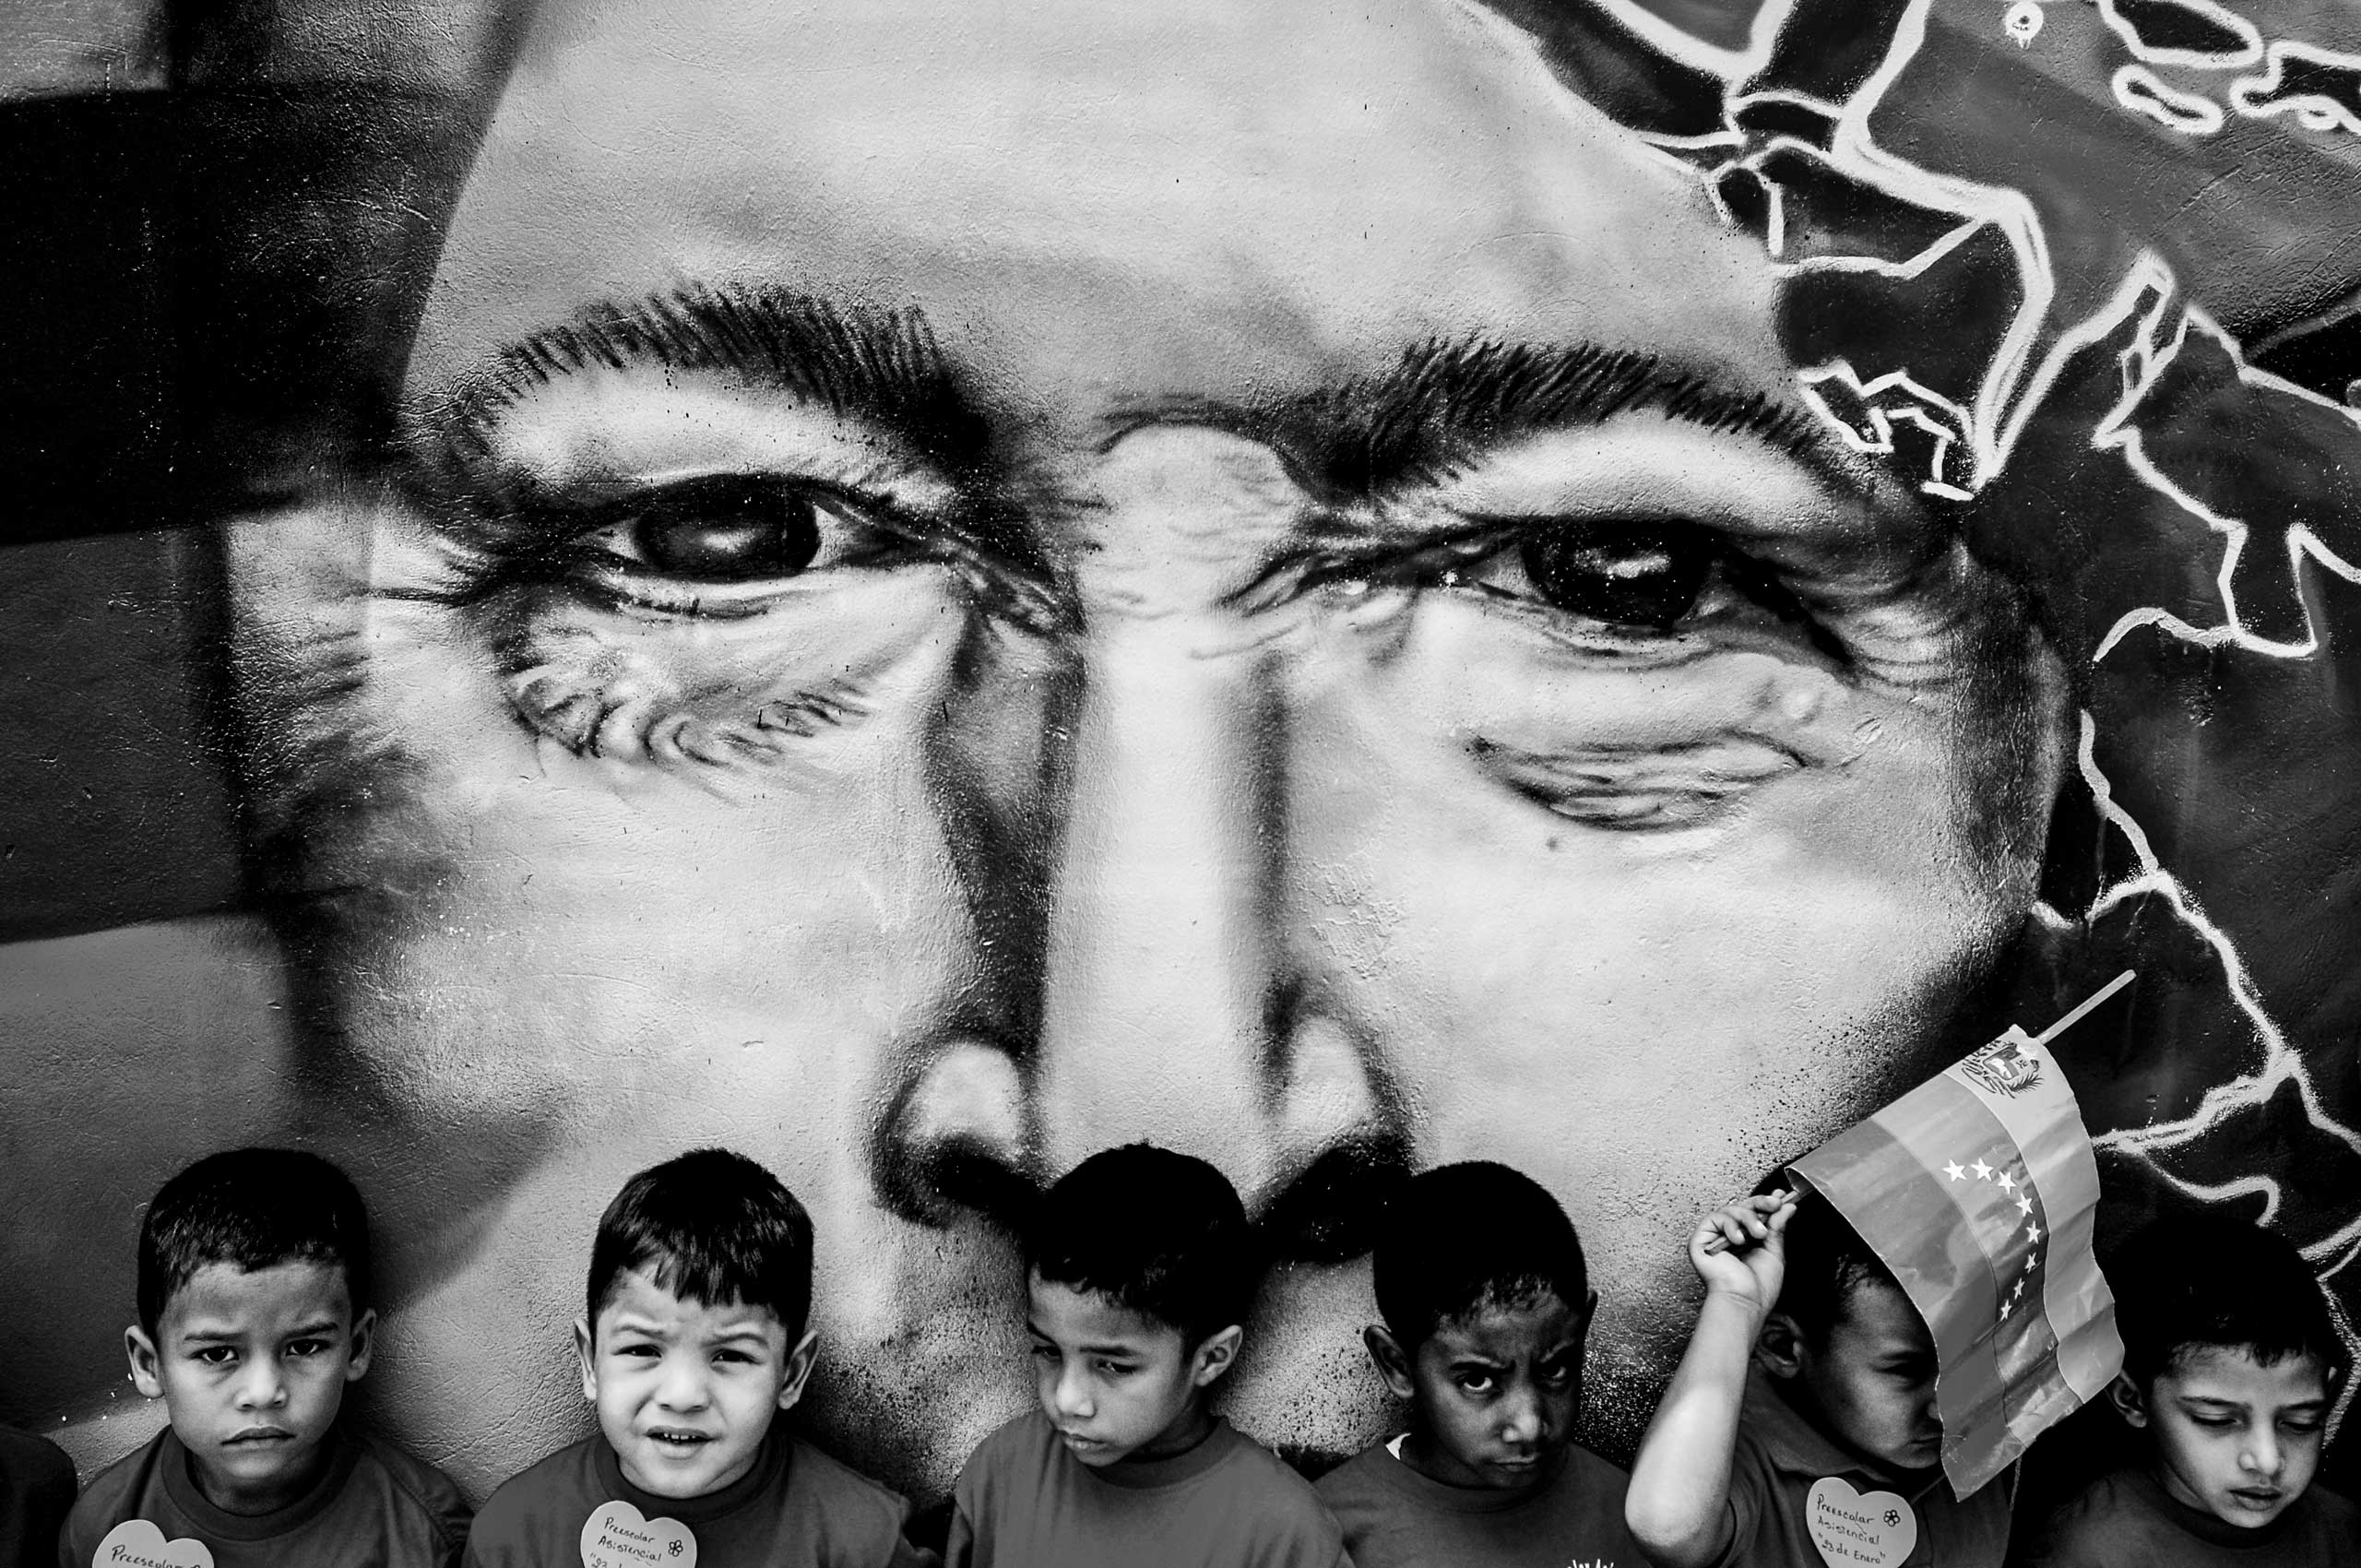 A group of children in front of graffiti of Hugo Chávez, during a school trip to the location of the former president's remains. Caracas, May 2013.